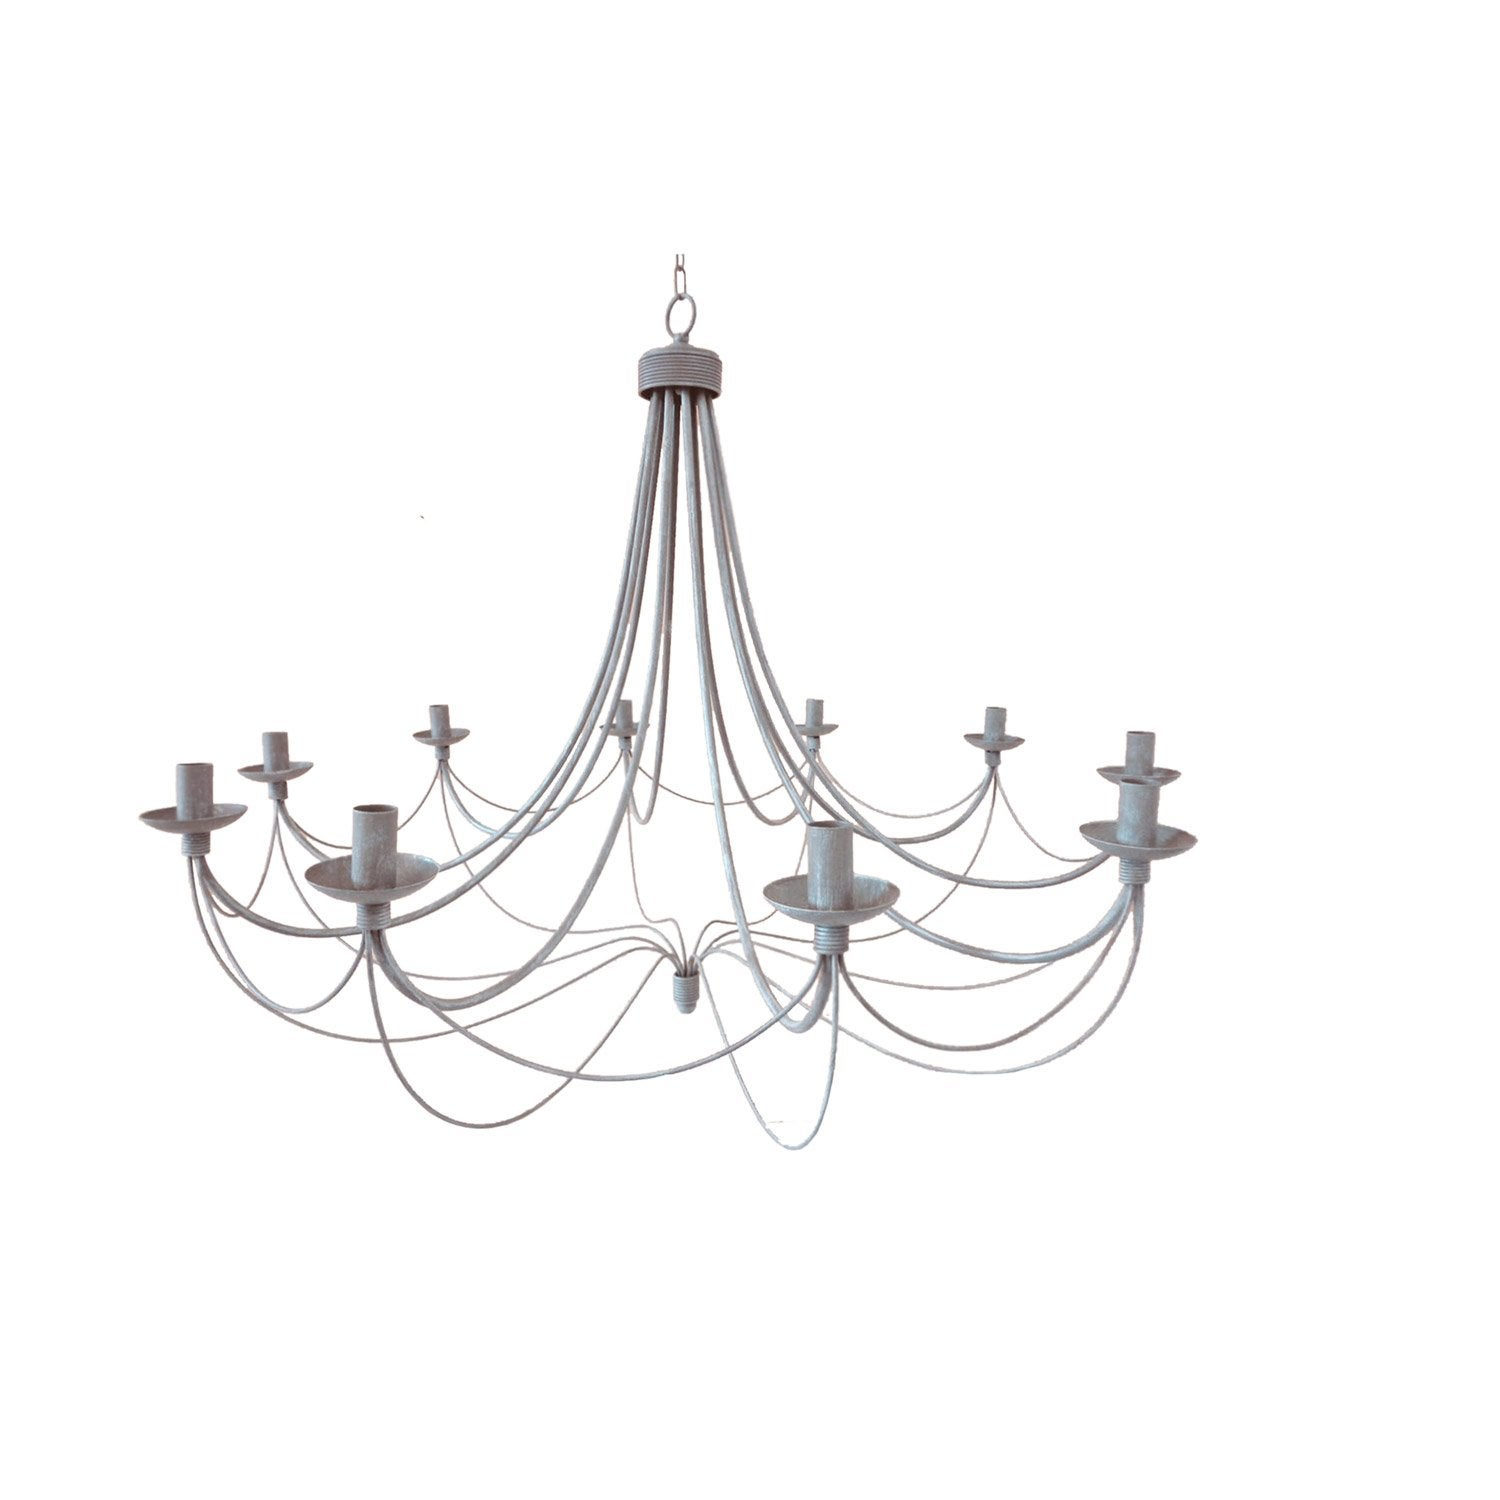 Lustre baroque leroy merlin amazing suspension e design zipy aluminium alu x w inspire with - Lustre baroque multicolore ...